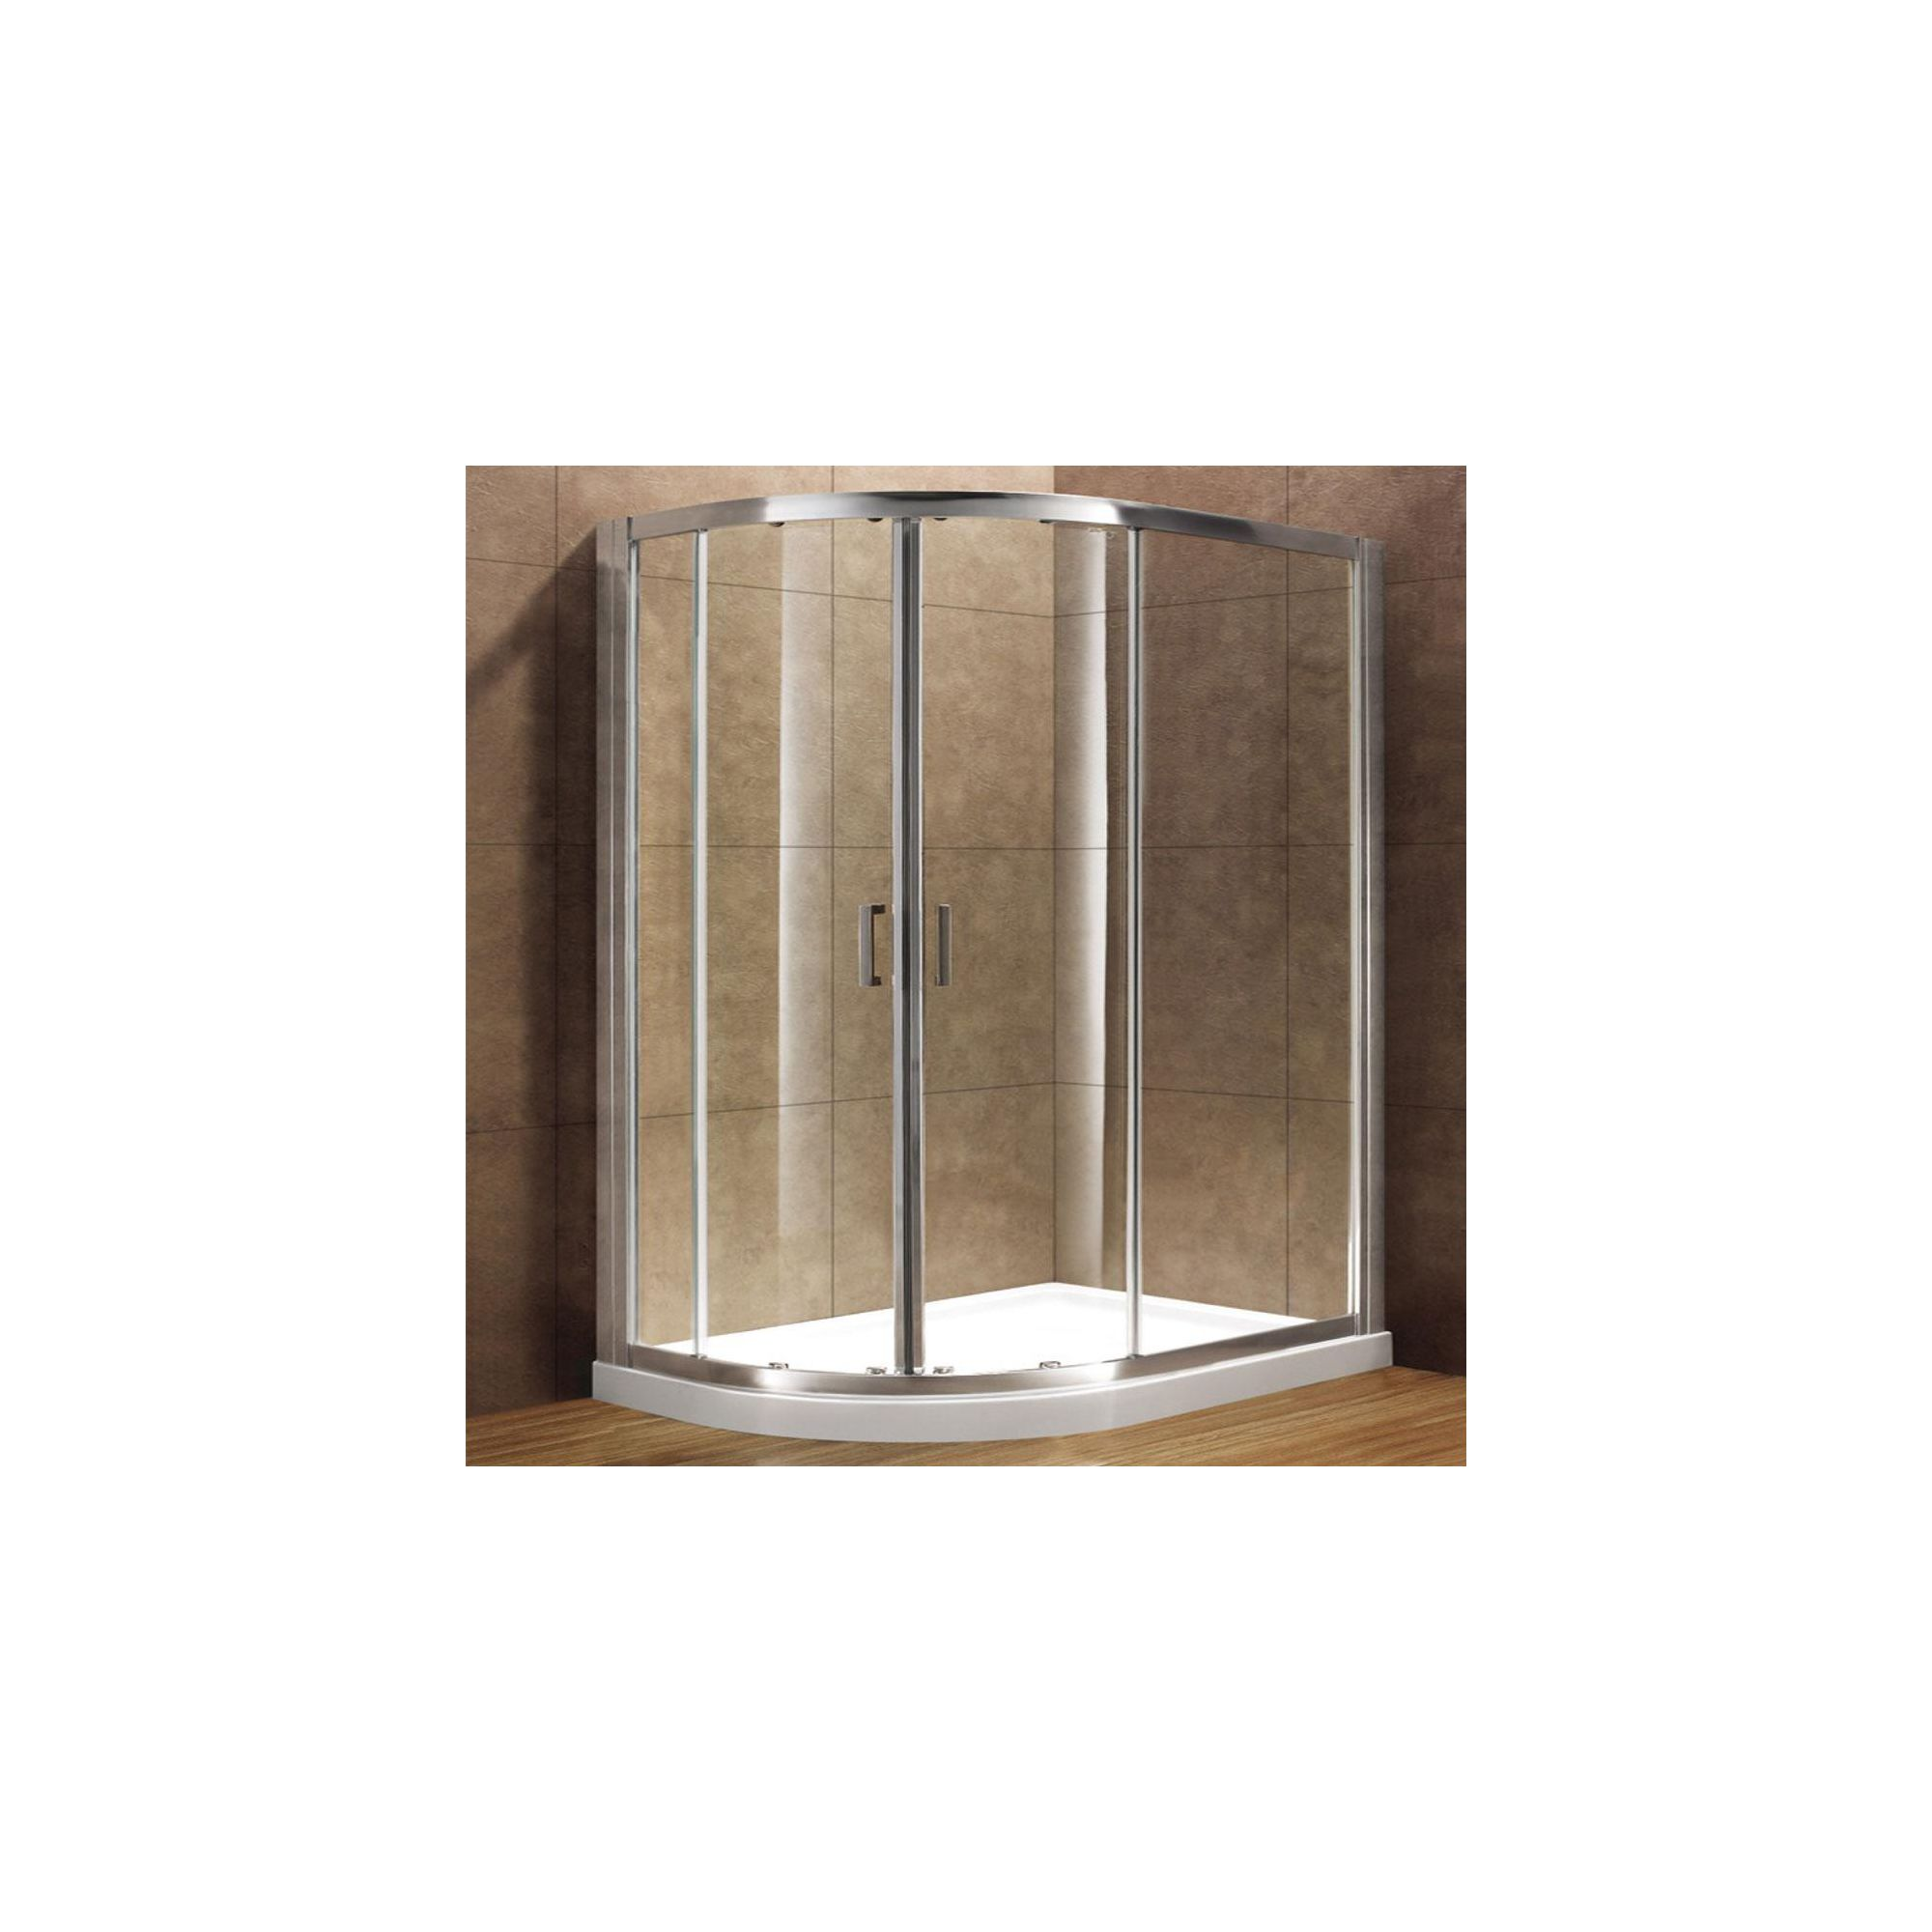 Duchy Premium Double Quadrant Door Shower Enclosure, 900mm x 900mm, 8mm Glass, Low Profile Tray at Tesco Direct